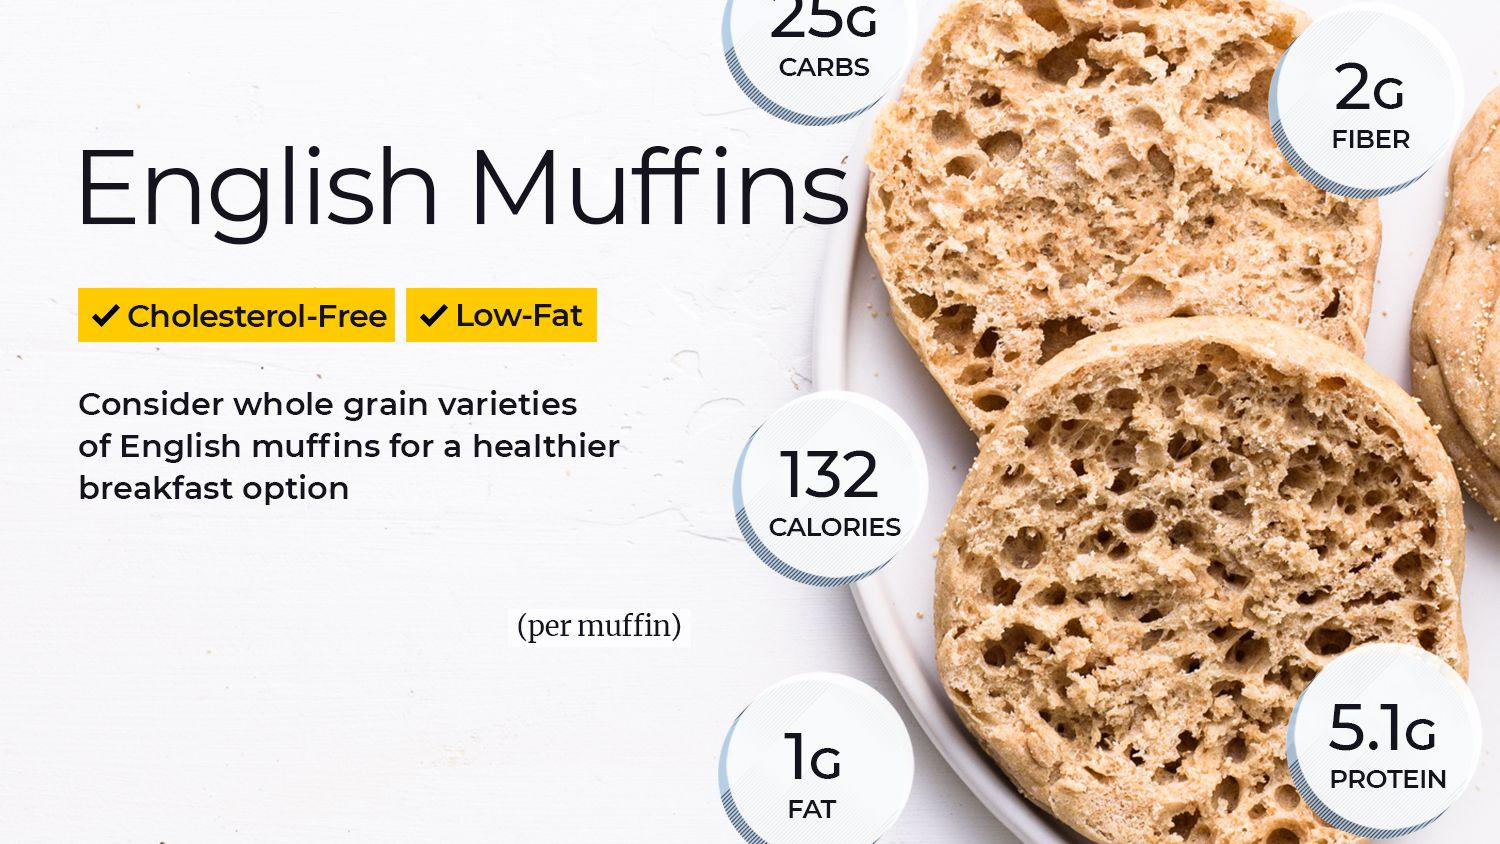 English Muffin Nutrition Facts Calories Carbs And Health Benefits